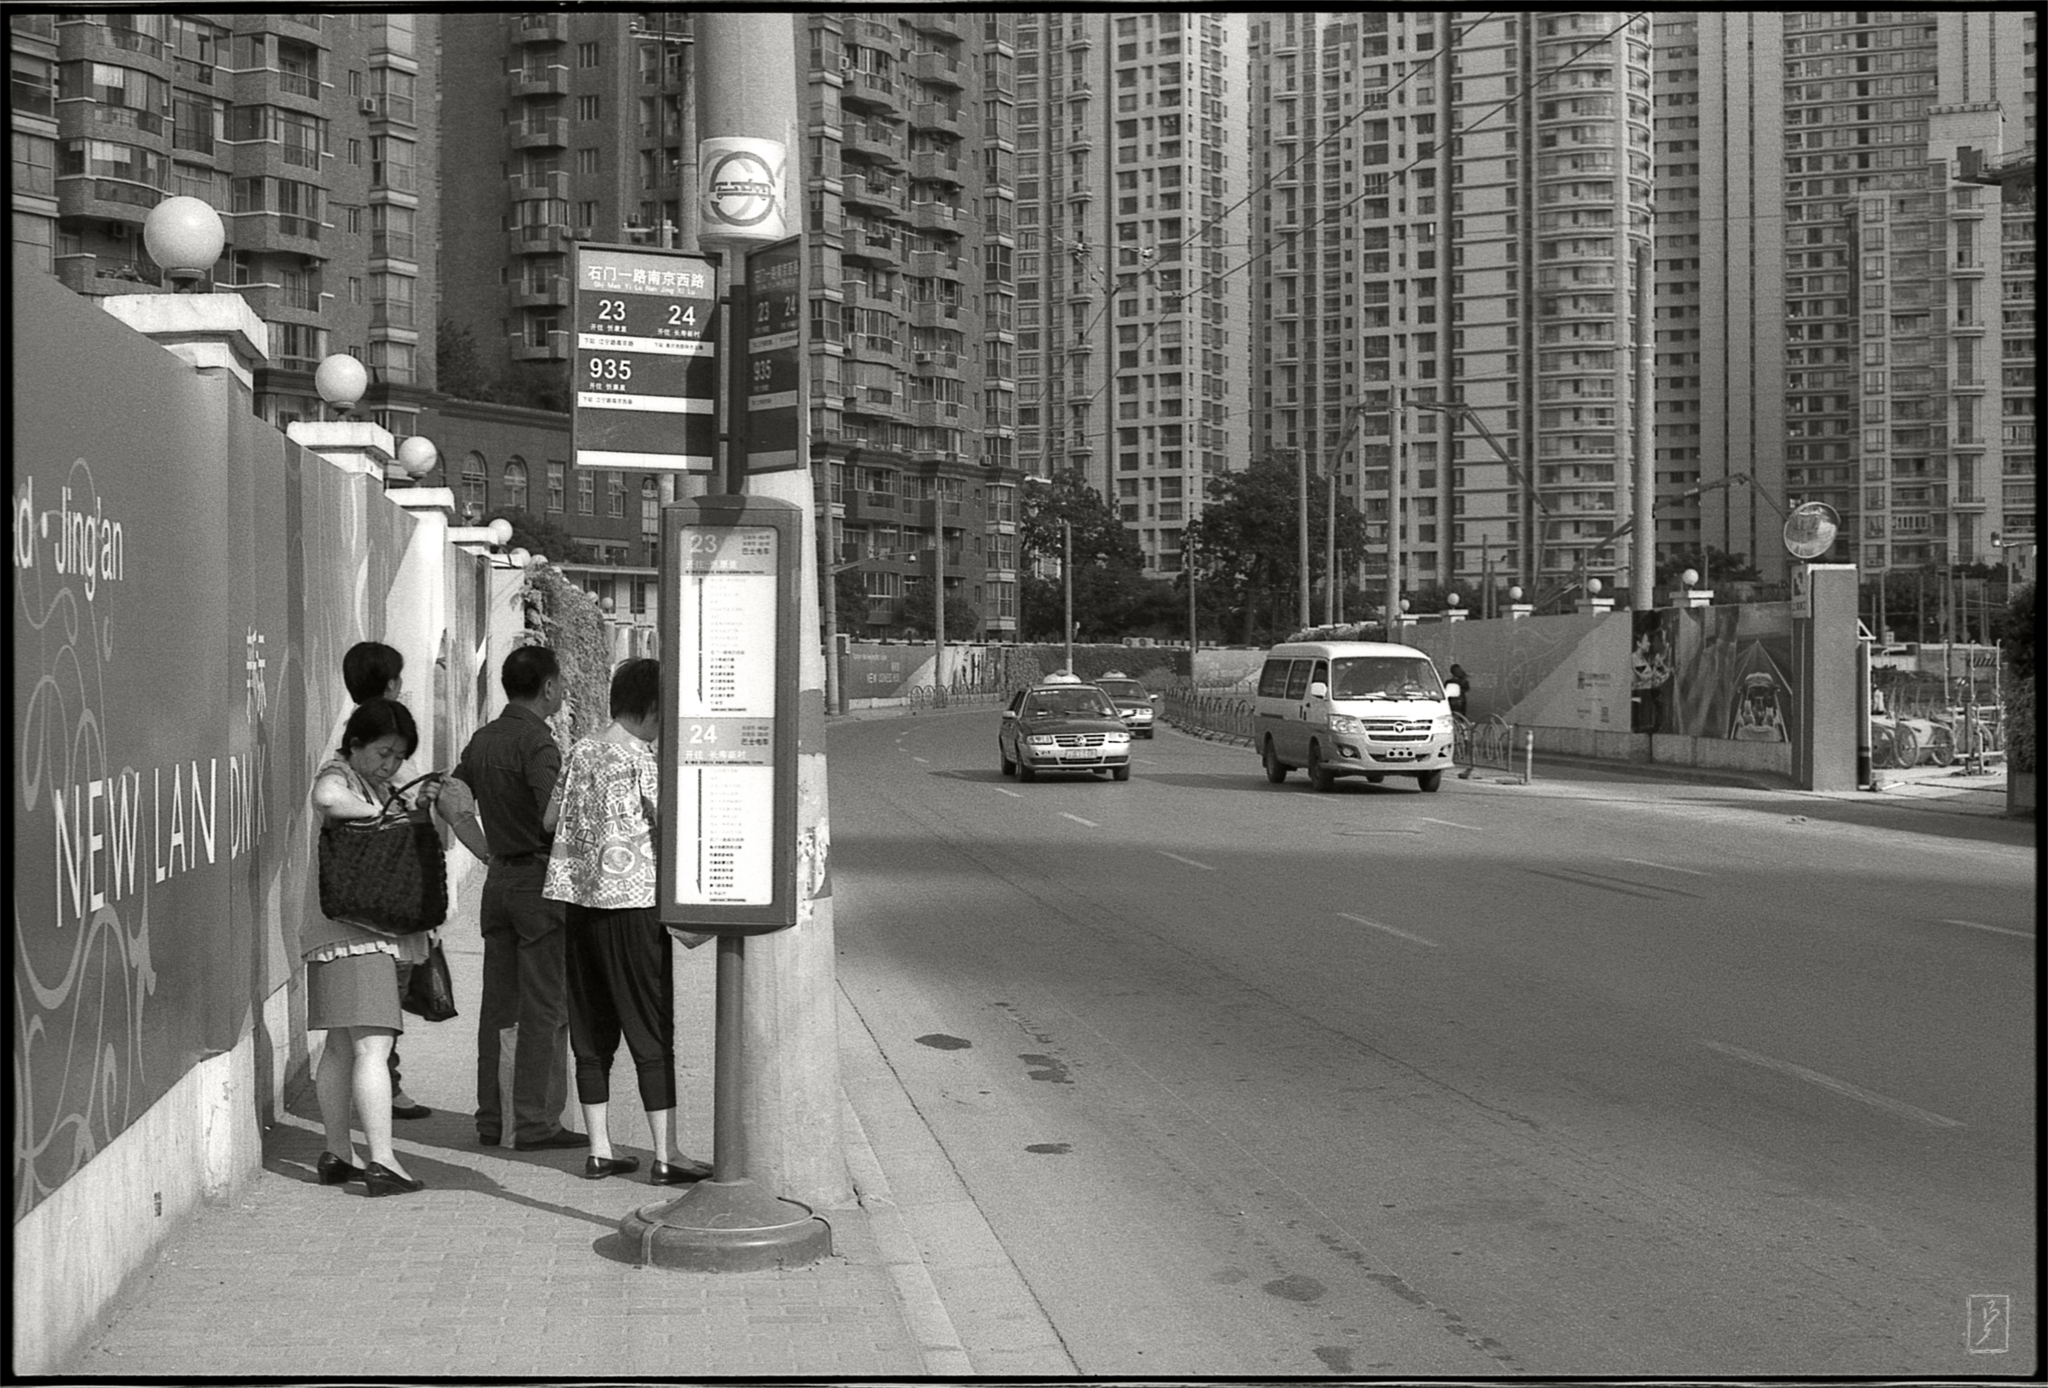 A bus stop and a backdrop of new appartments near the intersection Shimen yilu/Nanjing xilu in the heart of the city.